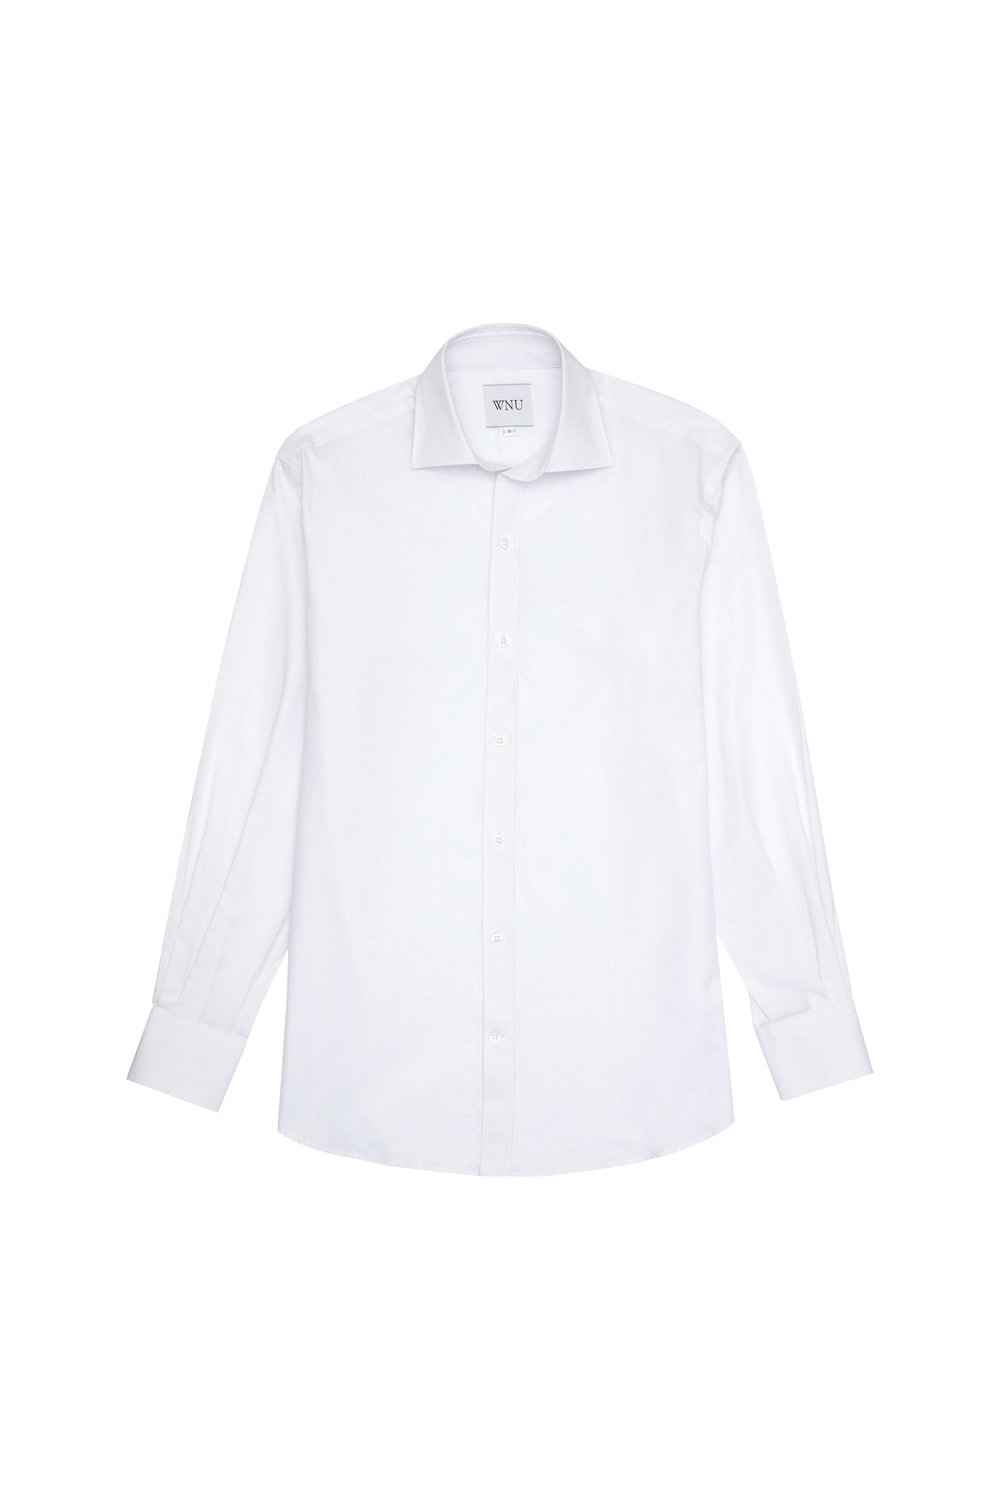 5. White With Nothing Underneath shirt, £80